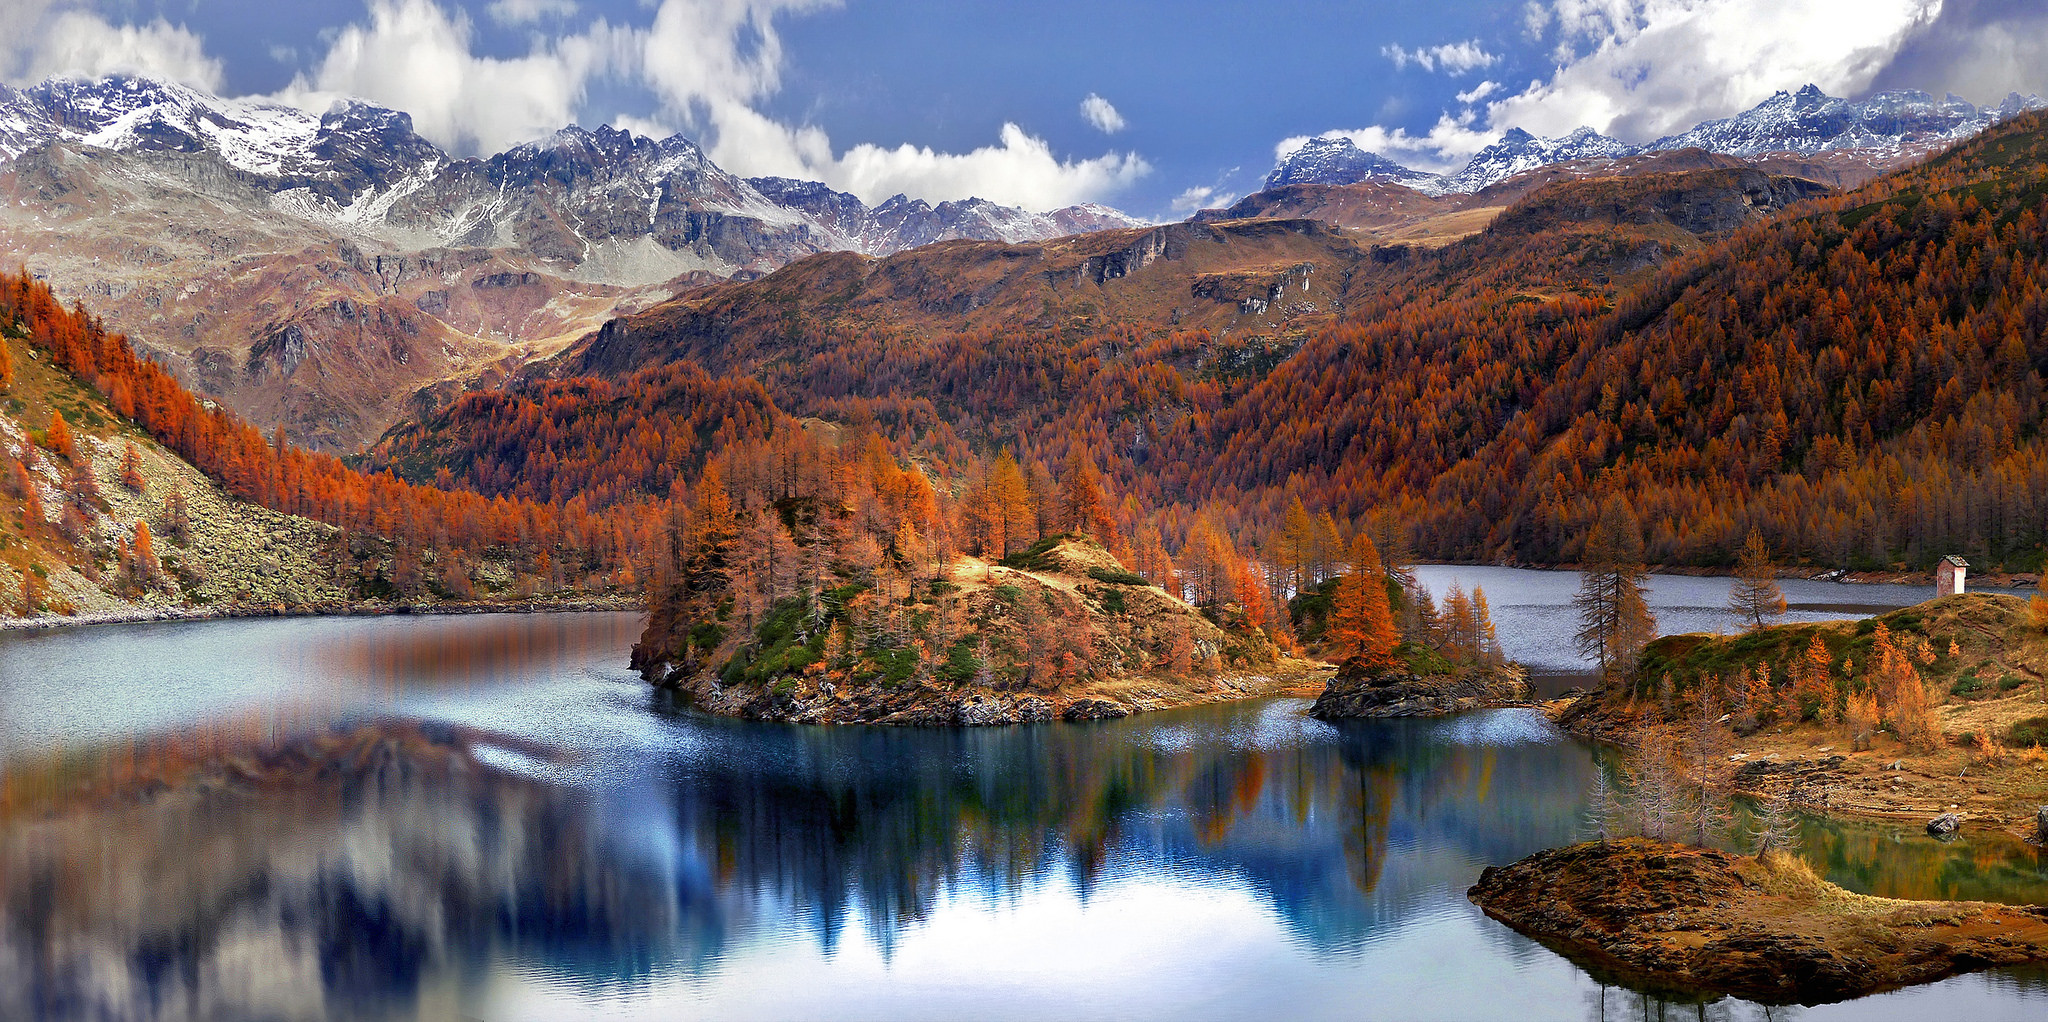 Most Breathtaking Pictures Of Lakes From Around The World